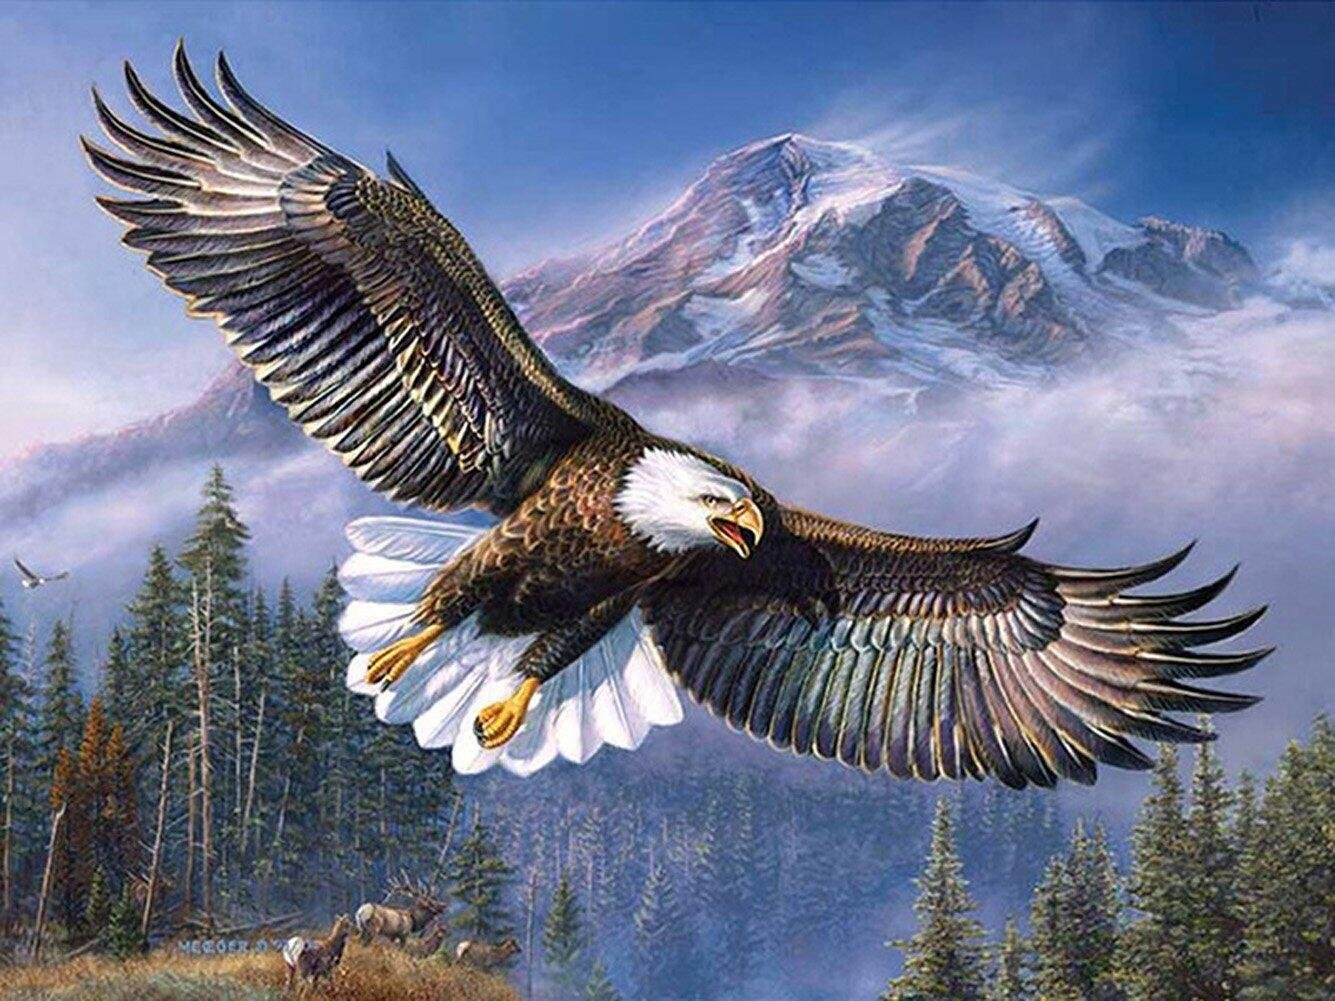 5D DIY Diamond Painting by Number Kits,Diamond Kit Home Wall Decor-The Eagle soars 16 X 12inch. by RUIZHE